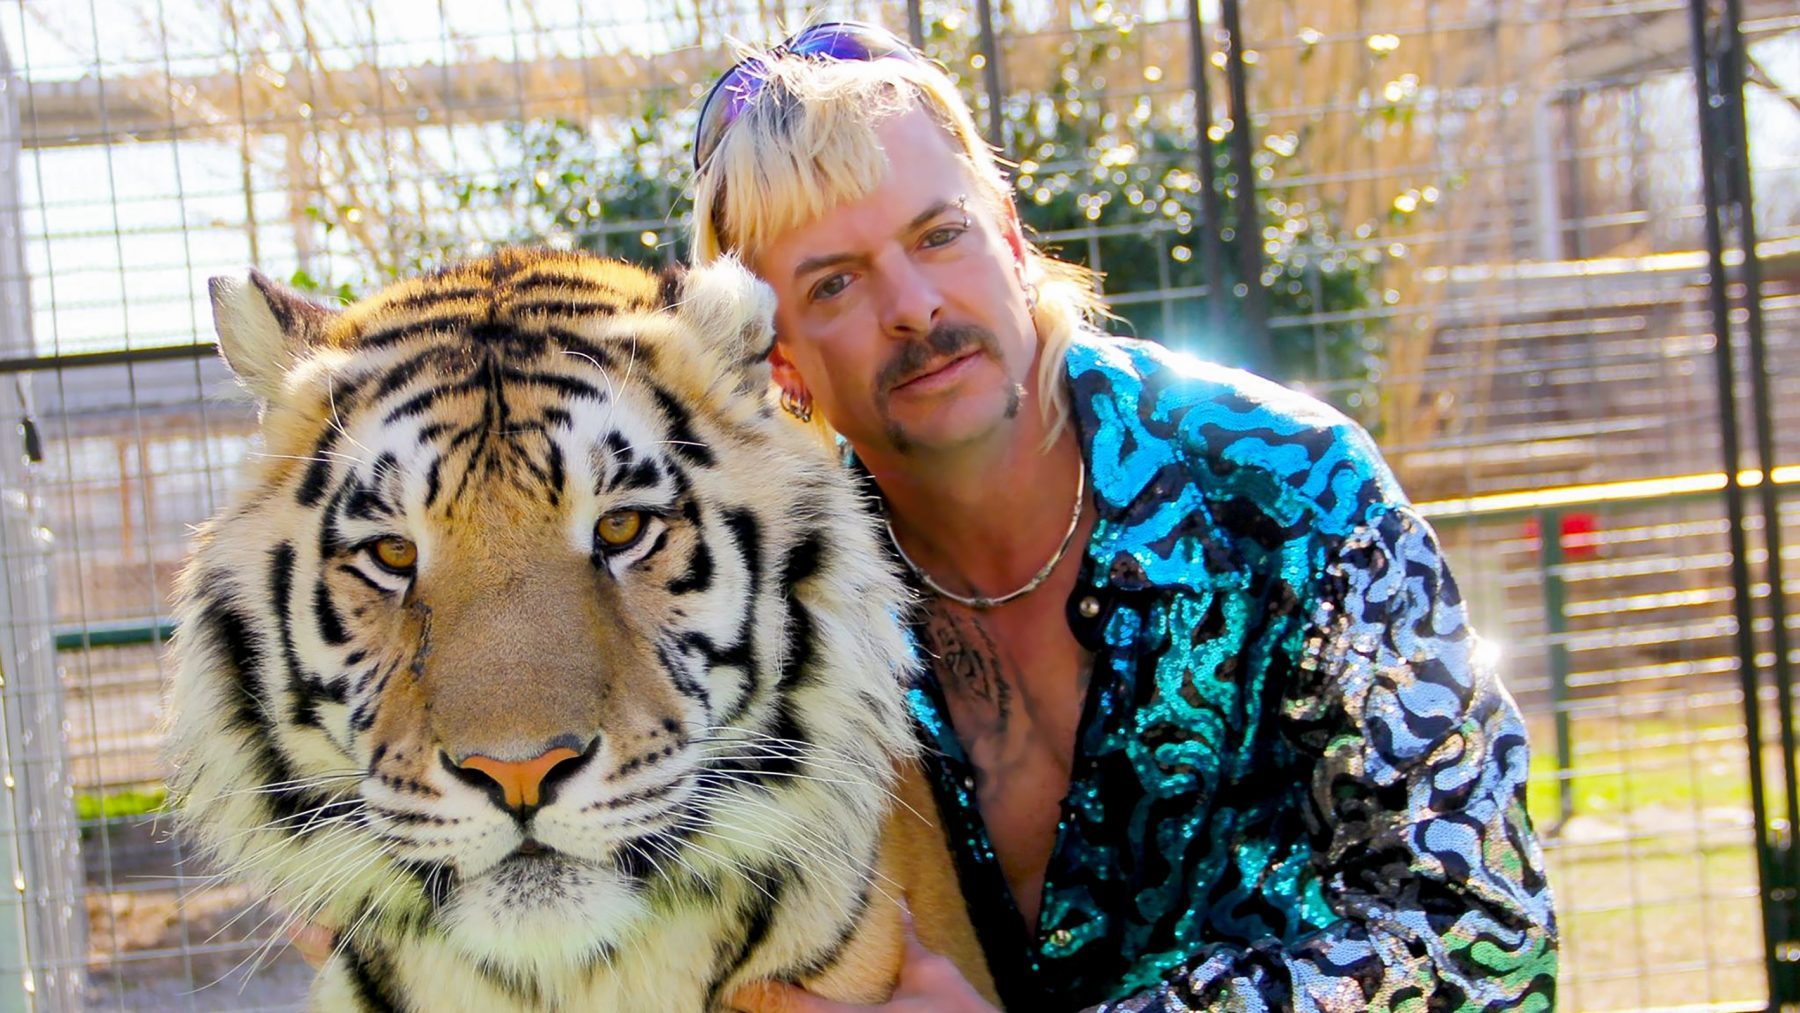 Vrijlating Joe Exotic